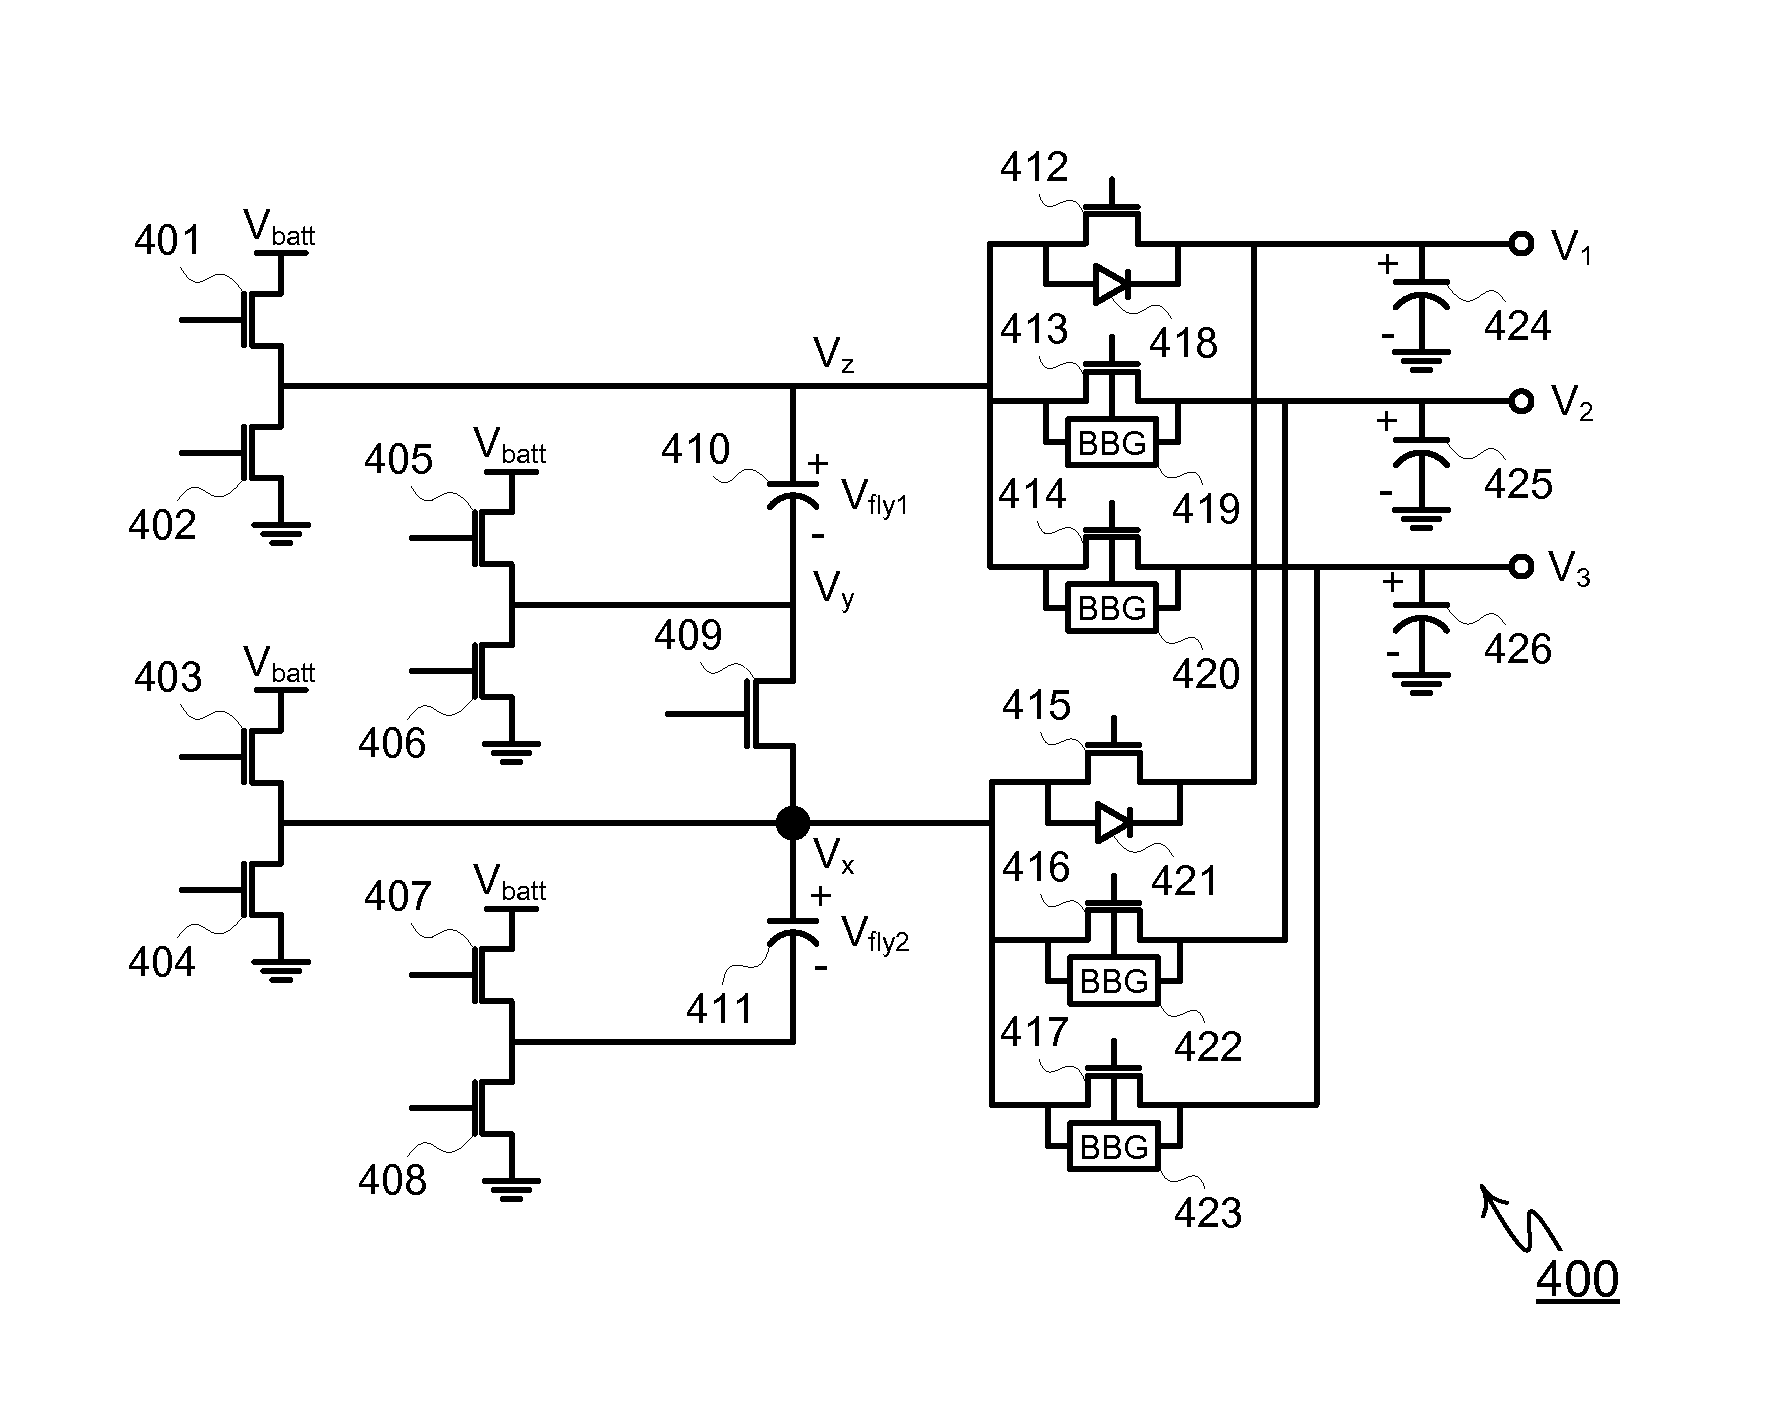 hight resolution of 1891 ic in filter circuit patent drawing 1891 ic in filter circuit